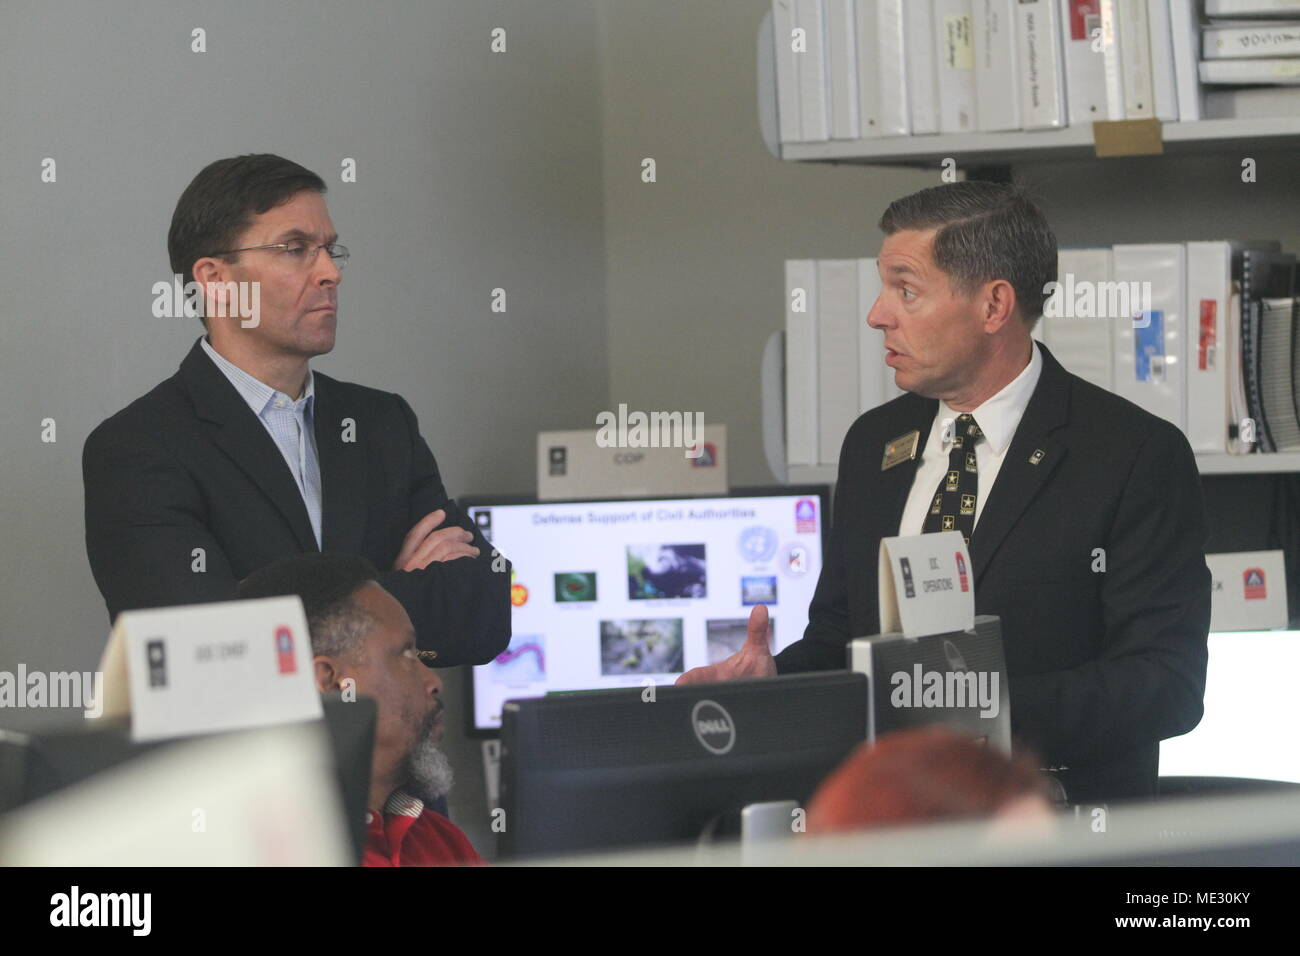 Charles Canedy, the chief of the commander's action group for U.S. Army North (Fifth Army), briefs the 23rd Secretary of the Army, Dr. Mark T. Esper on the functionality of ARNORTH's Defense Support of Civil Authorities mission Apr. 17 at the Joint Operations Center inside the historic Quadrangle at Fort Sam Houston, Texas. The DSCA mission focuses on the Department of Defense's Chemical, Biological, Radiological and Nuclear Response Enterprise, which provides support to the federal lead agency in the event of a catastrophic, national disaster. (Photo by Staff Sgt. Tomora Nance, U.S. Army Nort Stock Photo